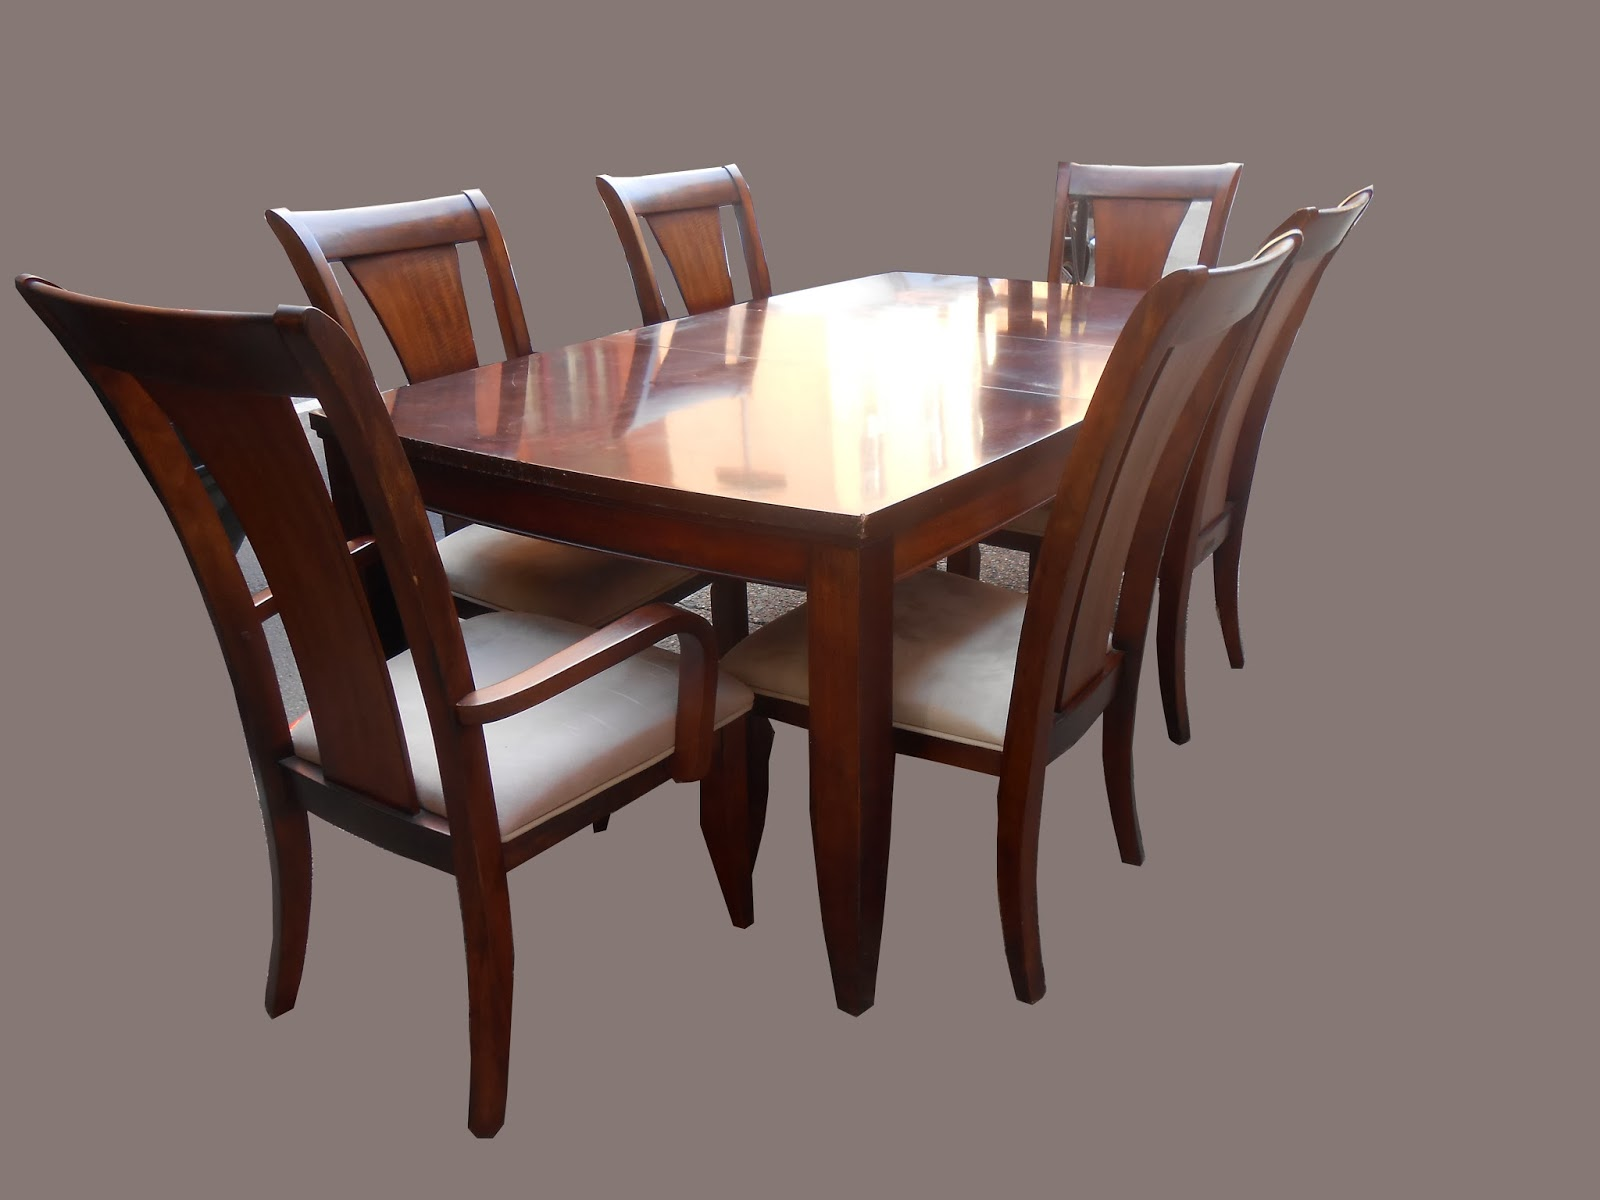 Uhuru furniture collectibles mahogany dining table w 6 for Breakfast table and chairs